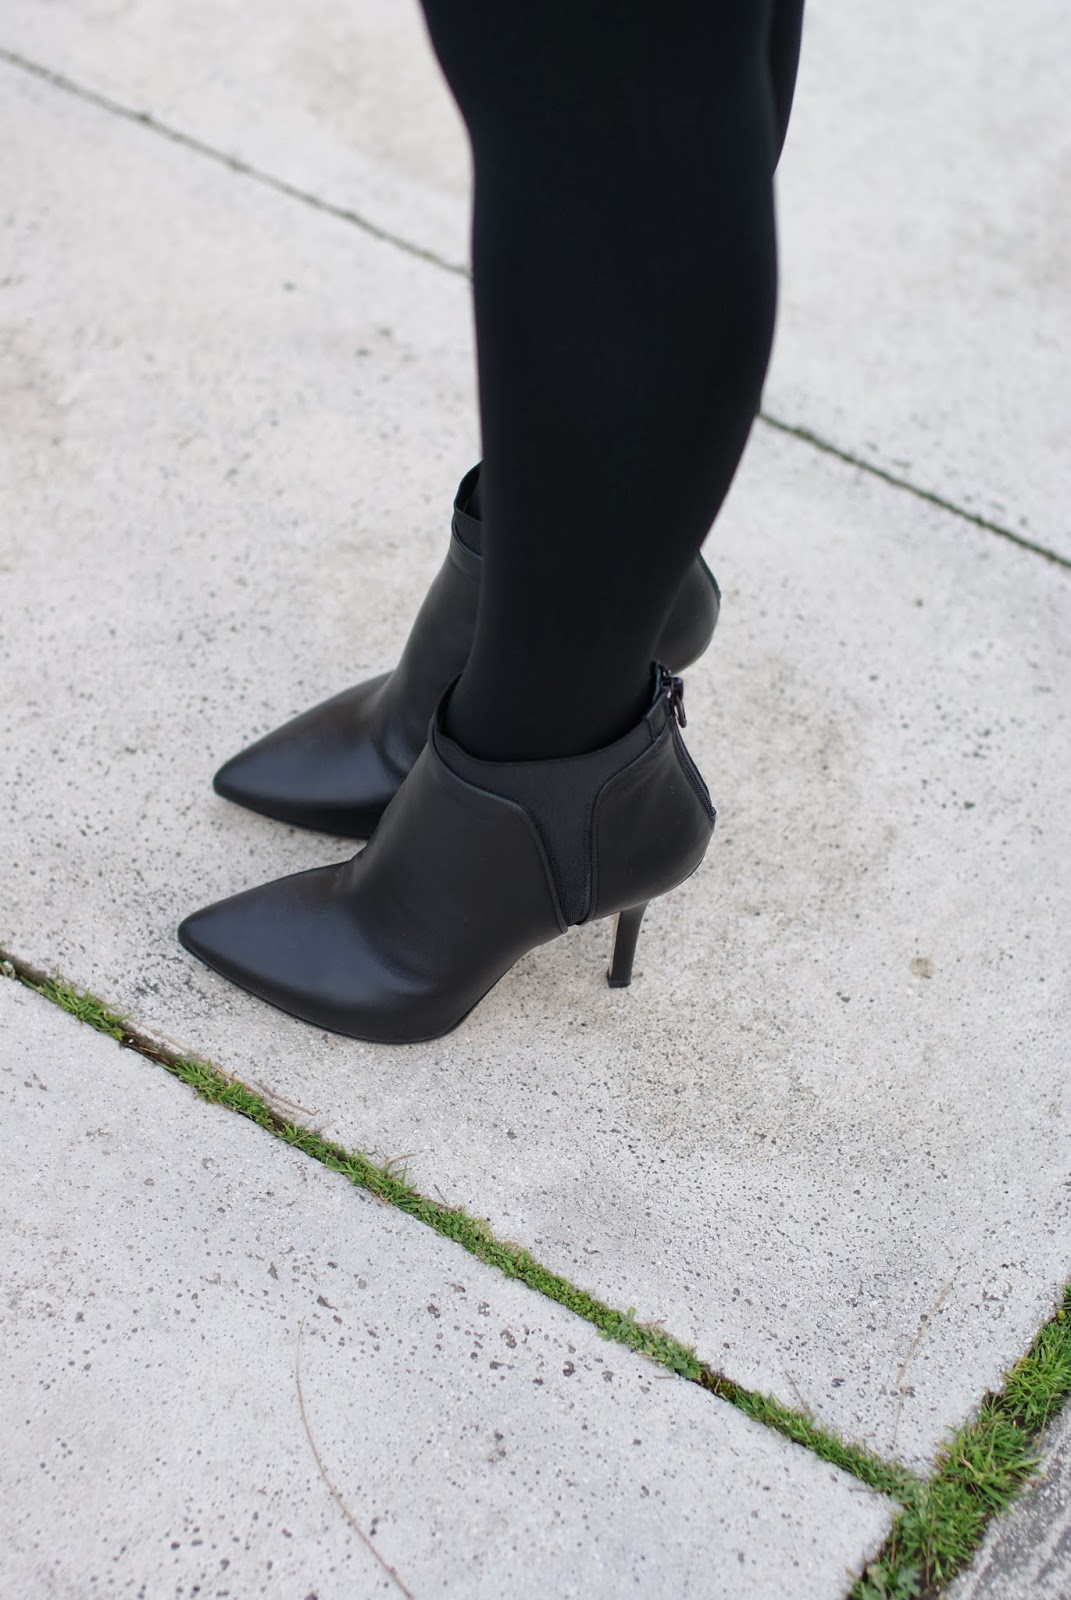 Giampaolo Viozzi ankle boots, Viozzi stivaletto nero, Fashion and Cookies, fashion blogger